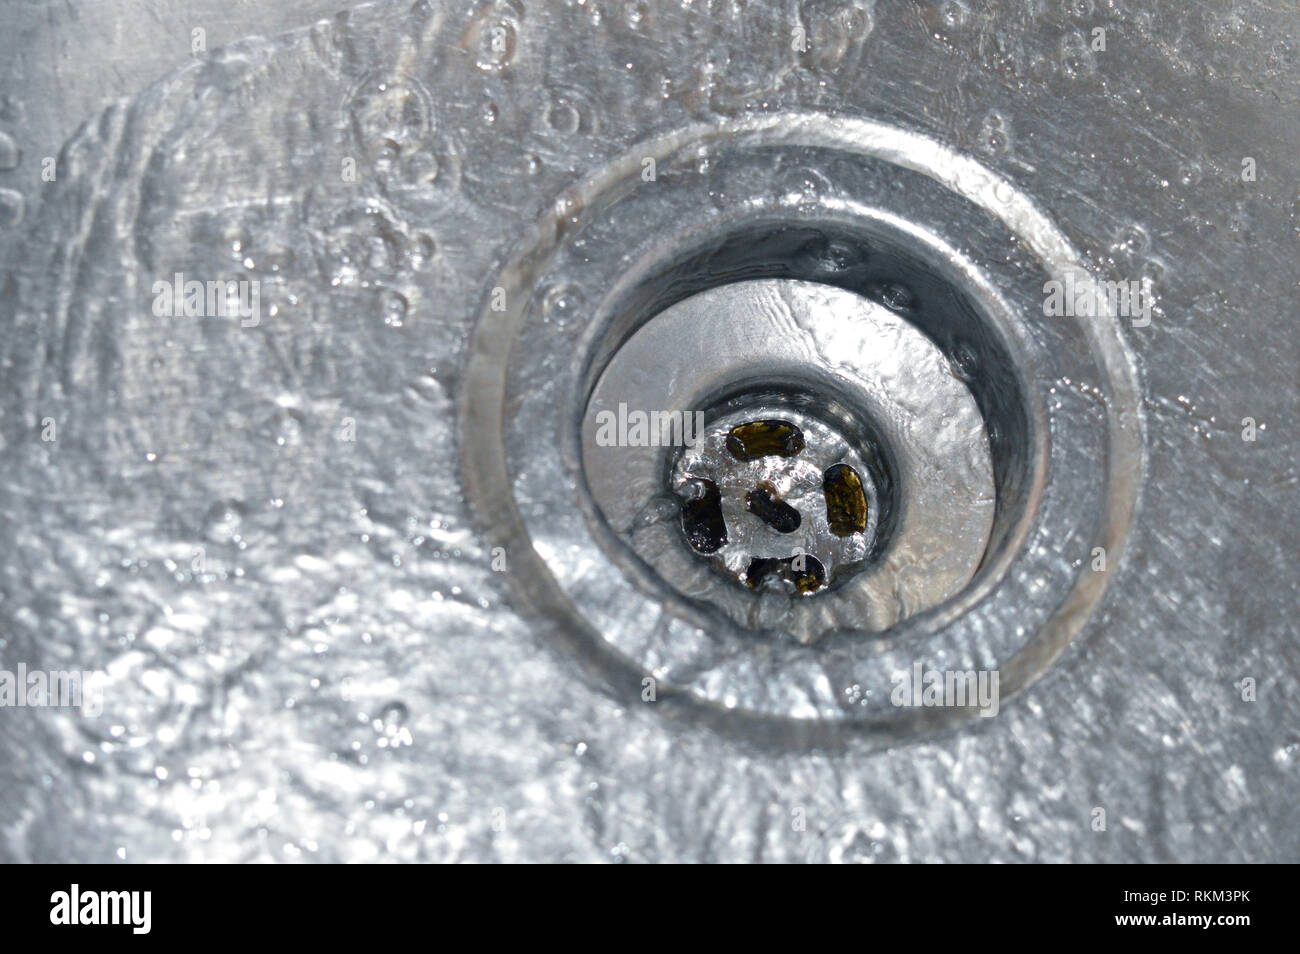 fast running water flowing down a kitchen or bathroom drain Stock Photo